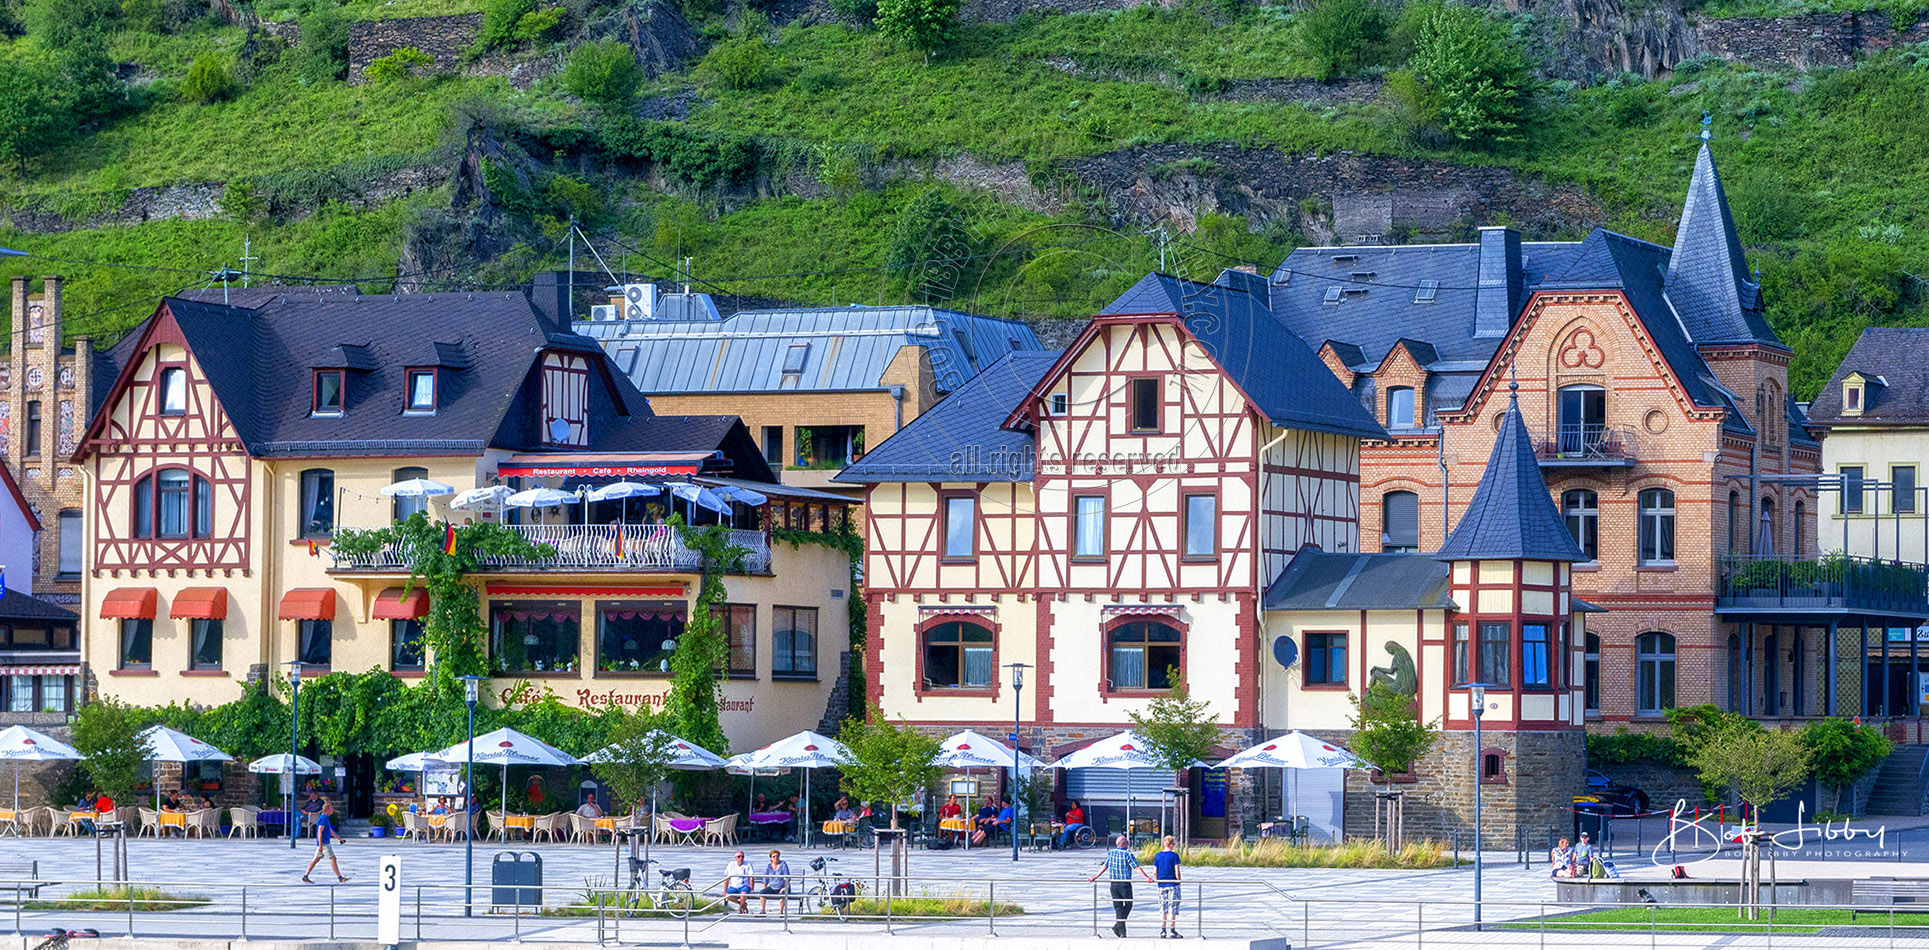 European Village on the Rhine